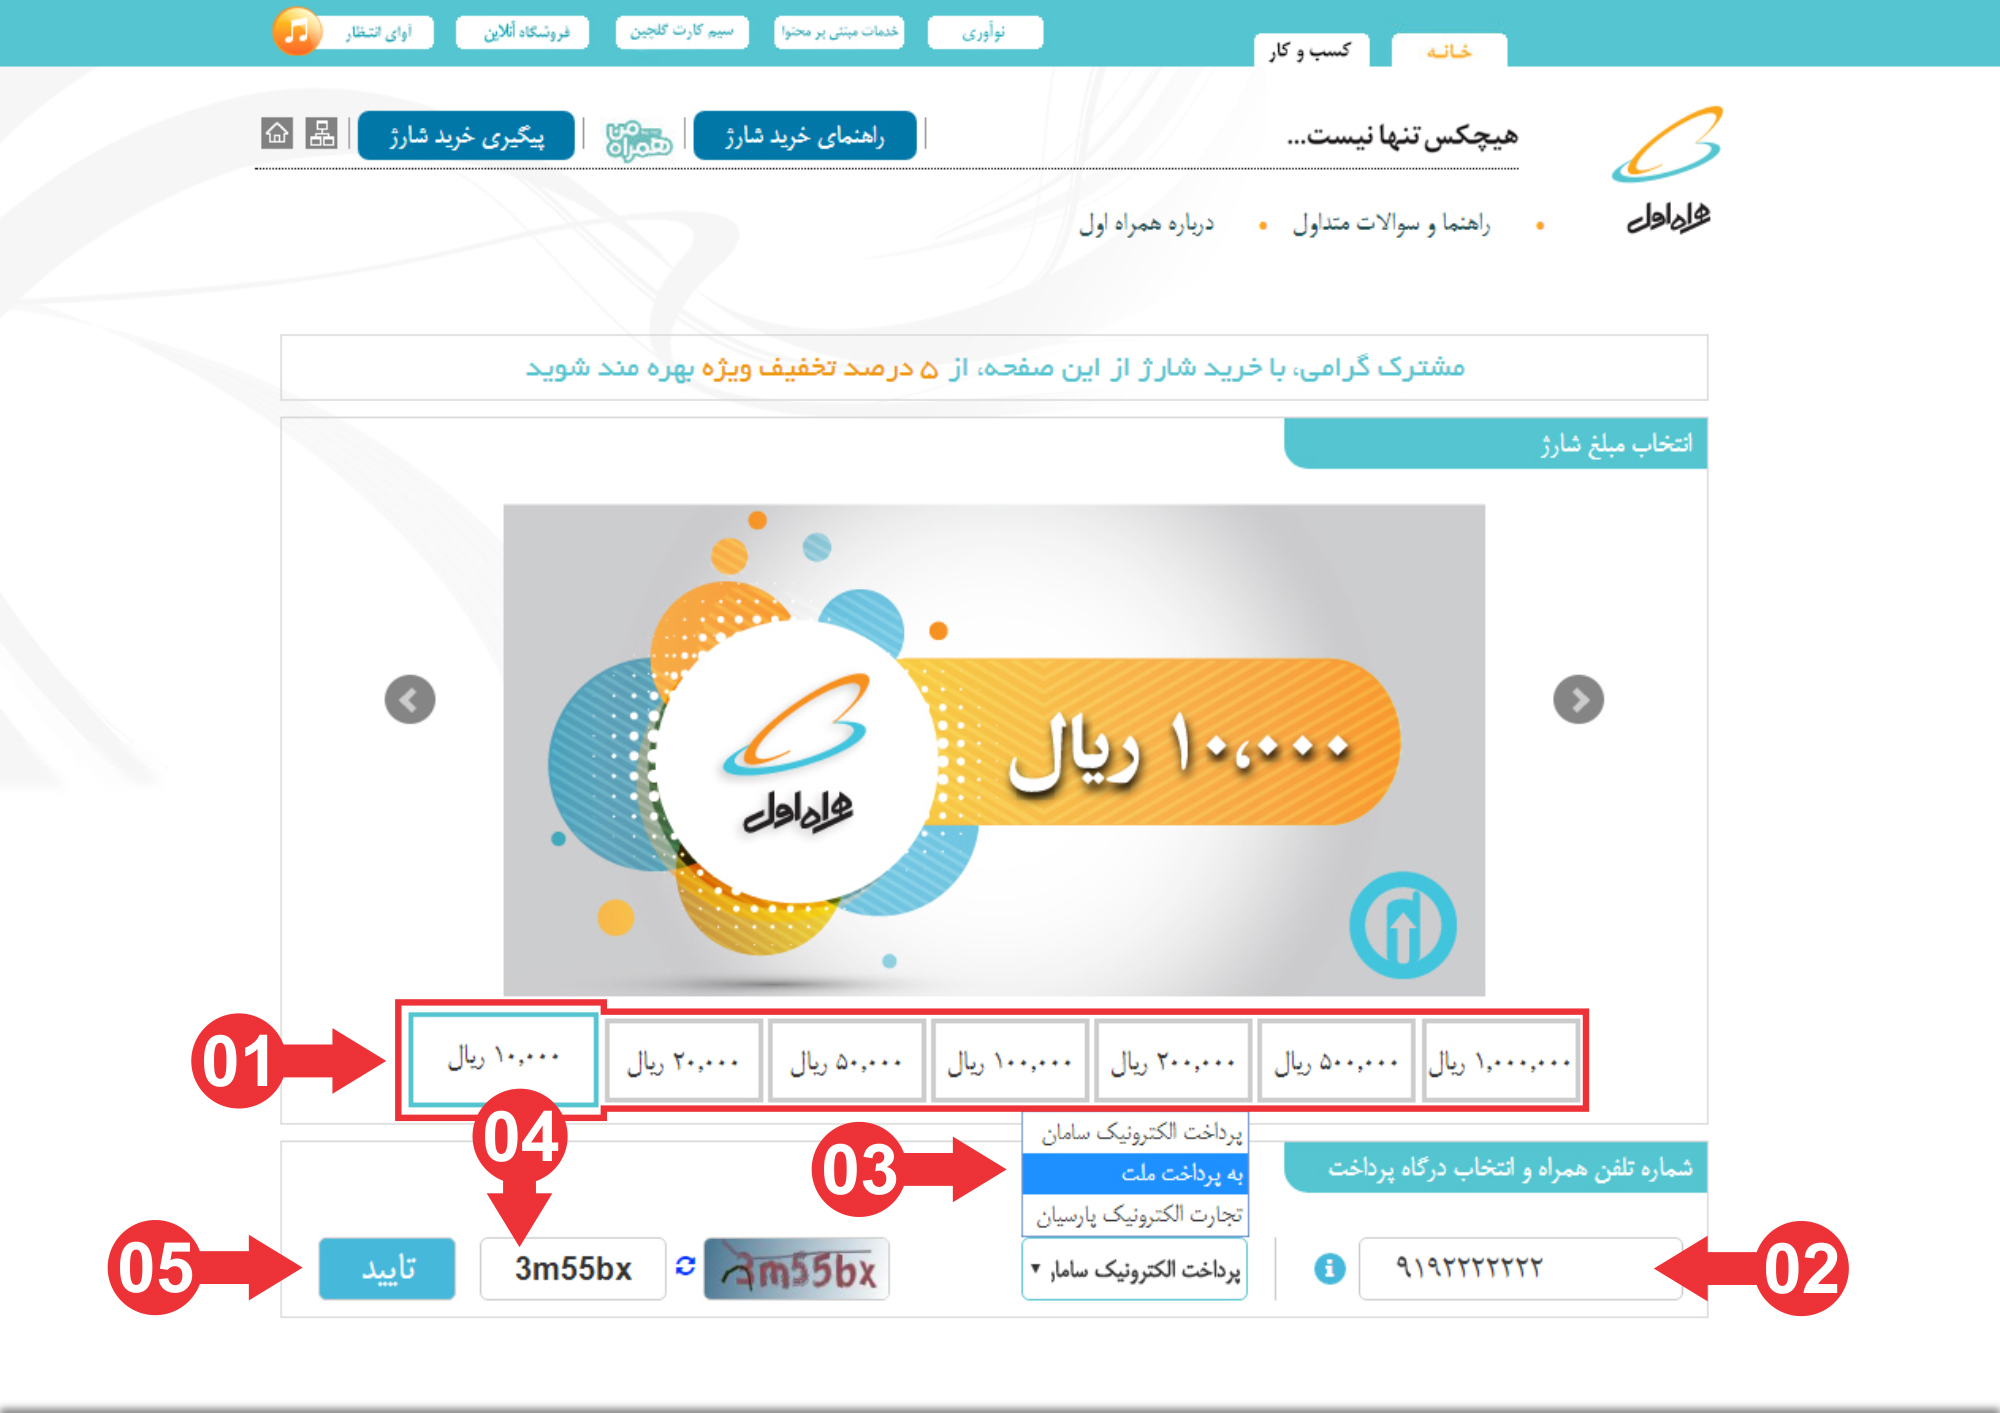 First step for recharging SIM card for Internet access in Iran